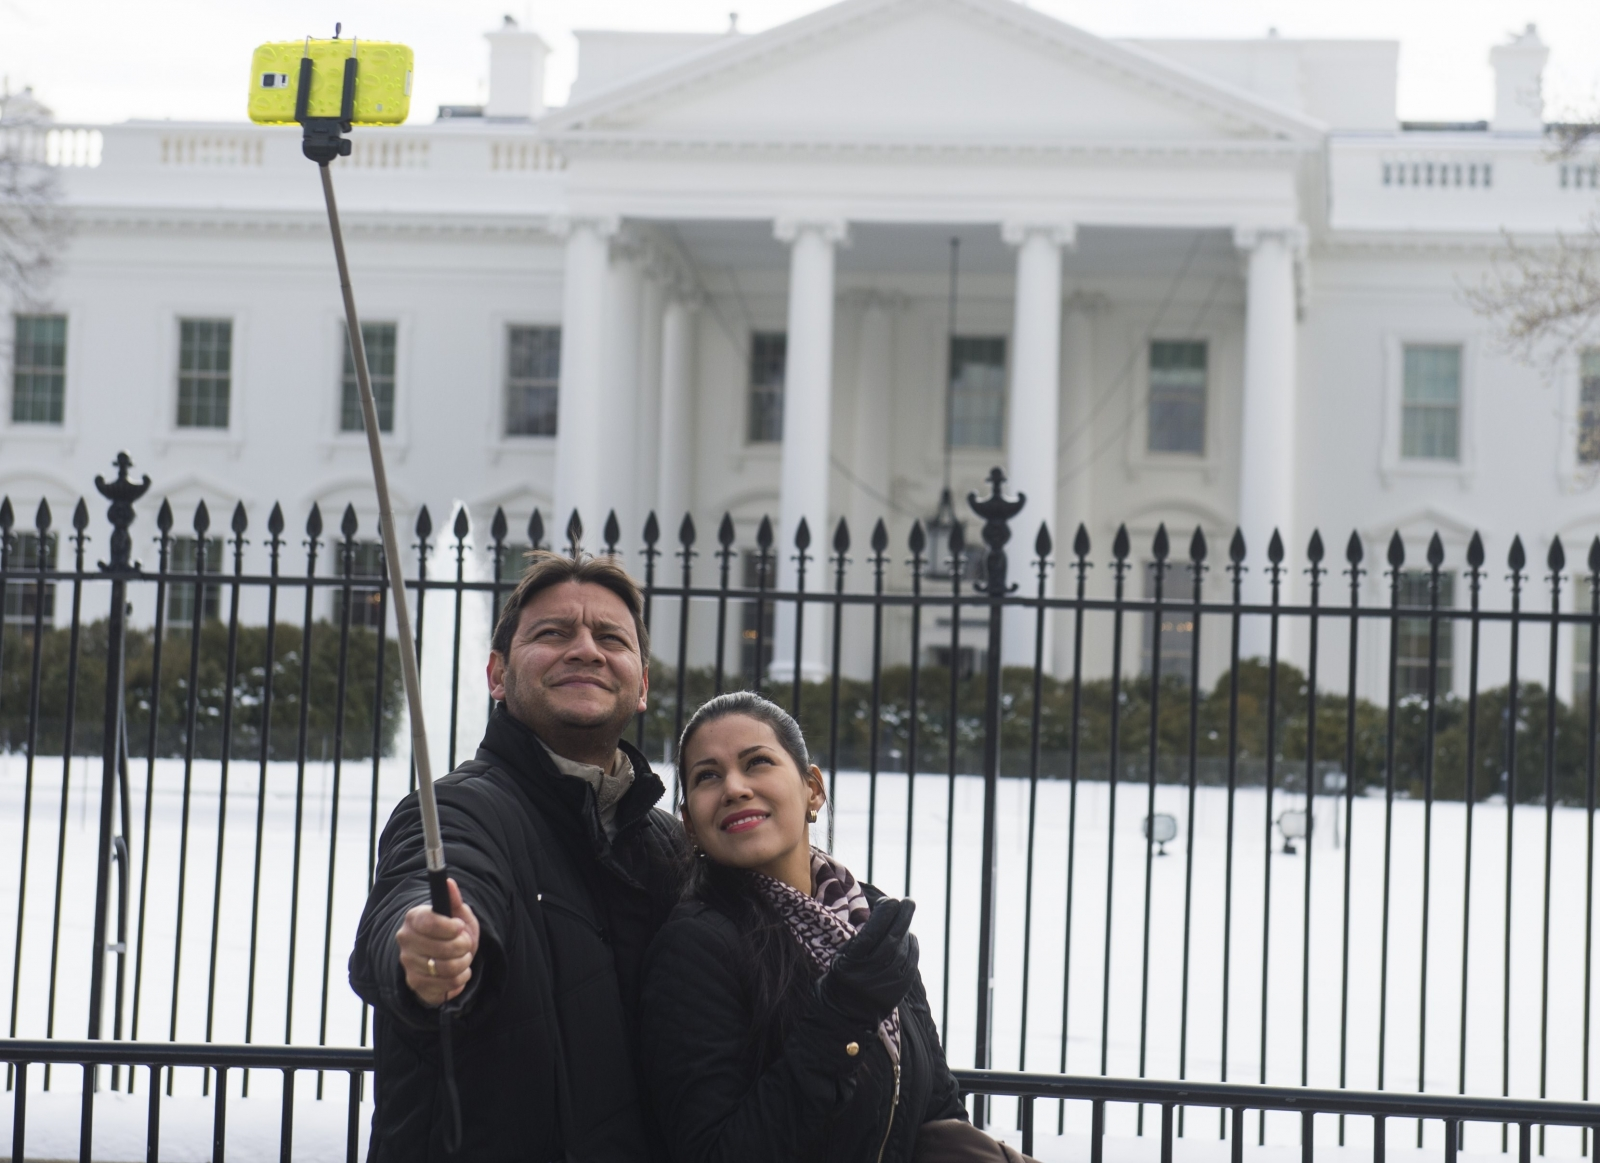 Are White House Tours Back Yet